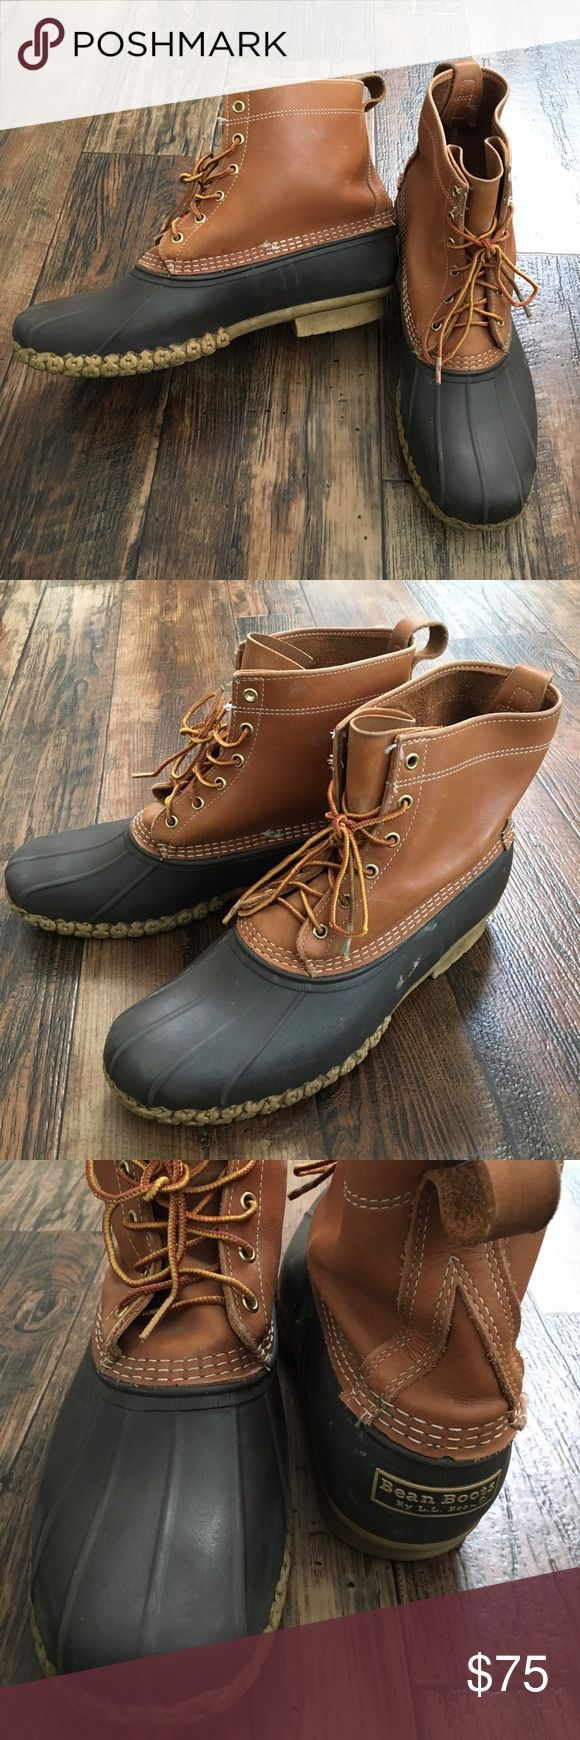 """Classic LL Bean Maine Hunting Duck Boots Sz 13 Classic LL Bean """"Bean Boots""""   Men's Sz 13  In great condition.  2 tone- rubber bottom, leather upper boots  Retail is $120 L.L. Bean Shoes Boots"""